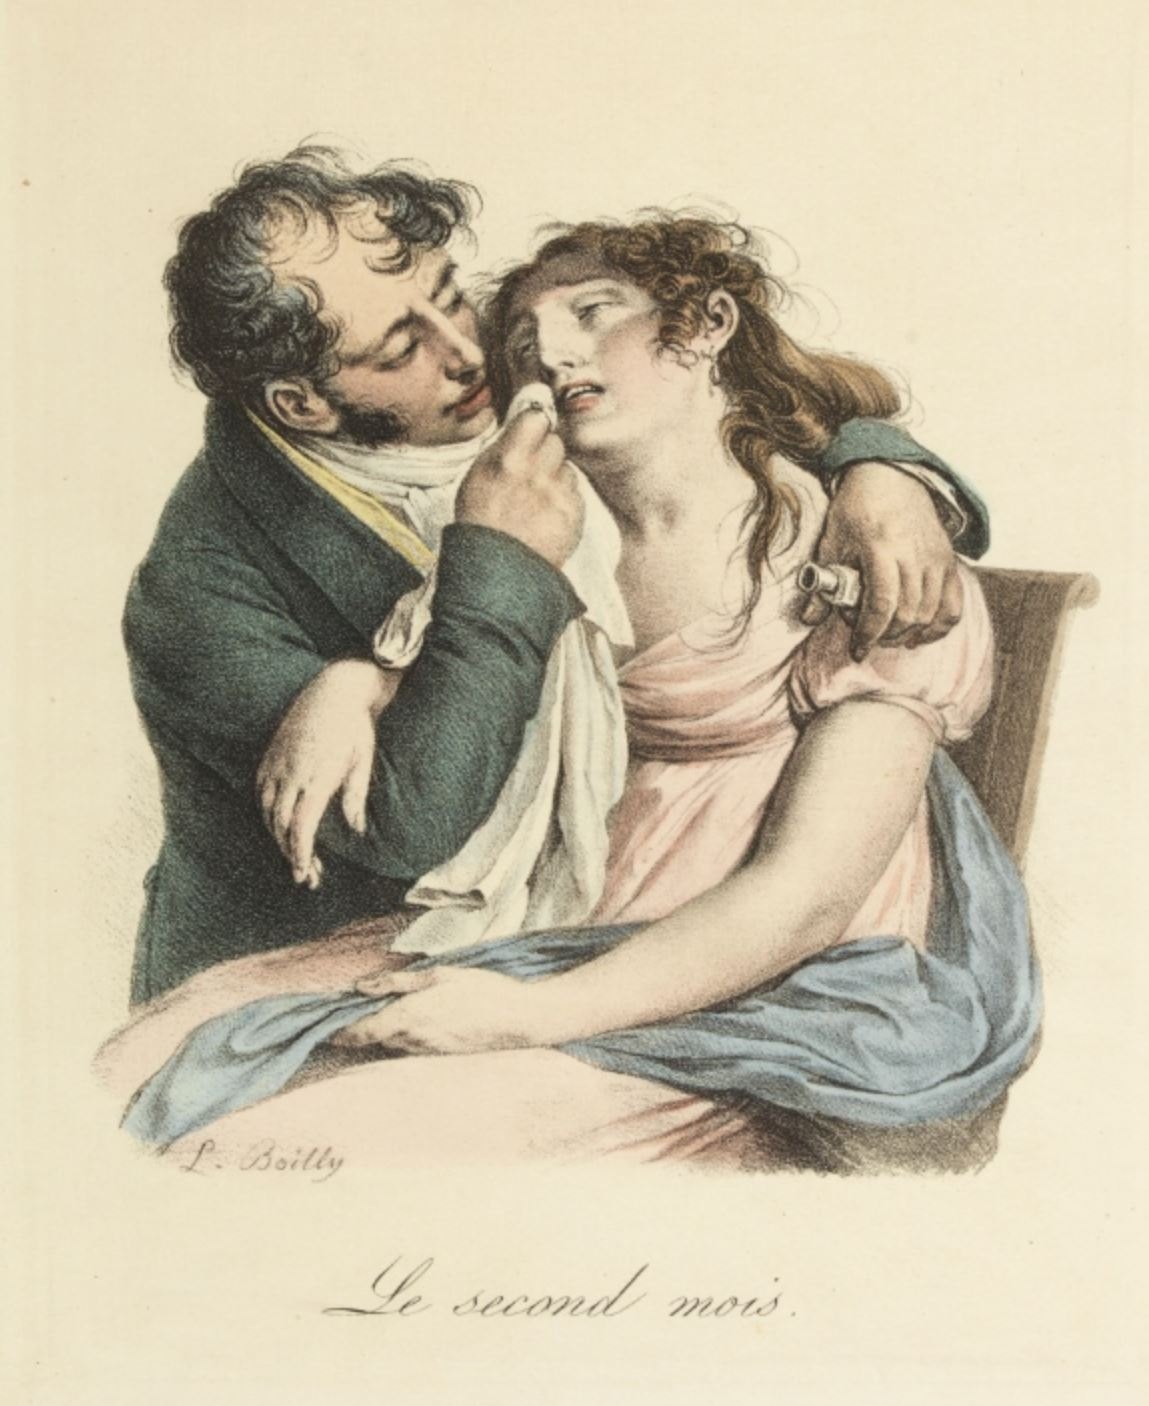 Boilly 1825 ca Le second mois